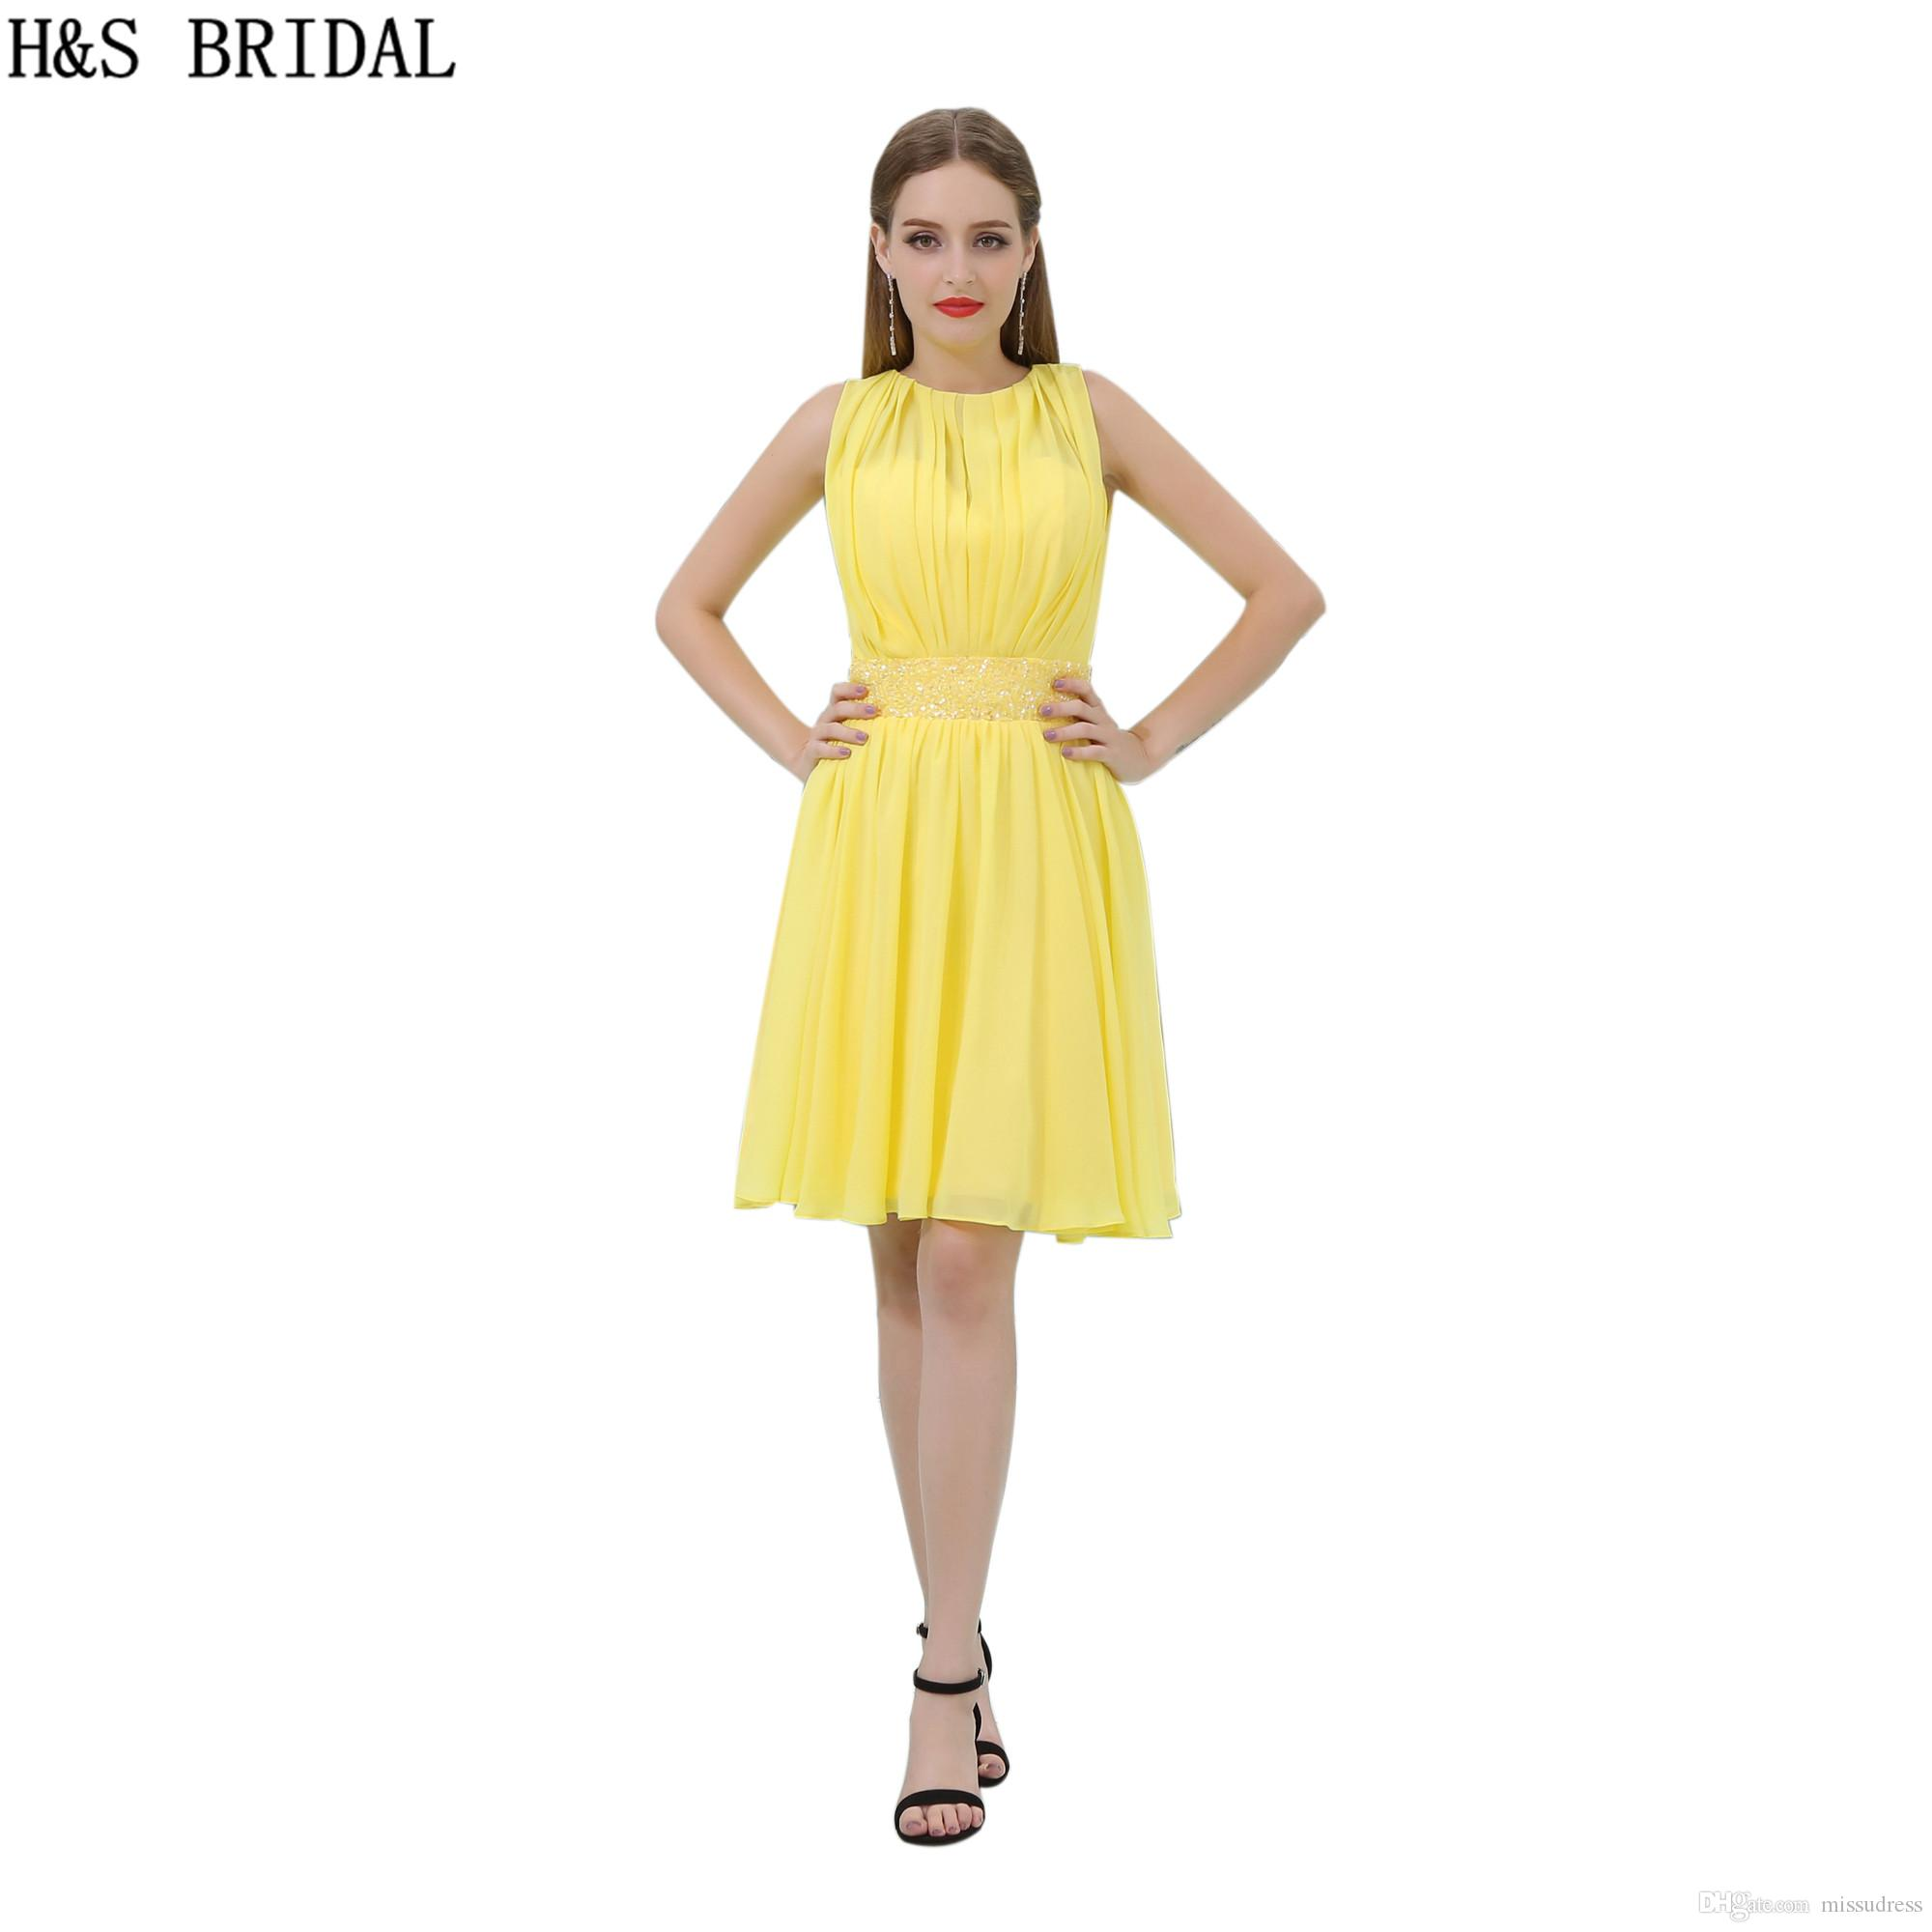 6670945be99 Short Chiffon Homecoming Dresses Beading Yellow Sheer Neck Cocktail Dress  Charming Girls Cheap Party Gowns B012 Homecoming Dresses Columbus Ohio  Homecoming ...